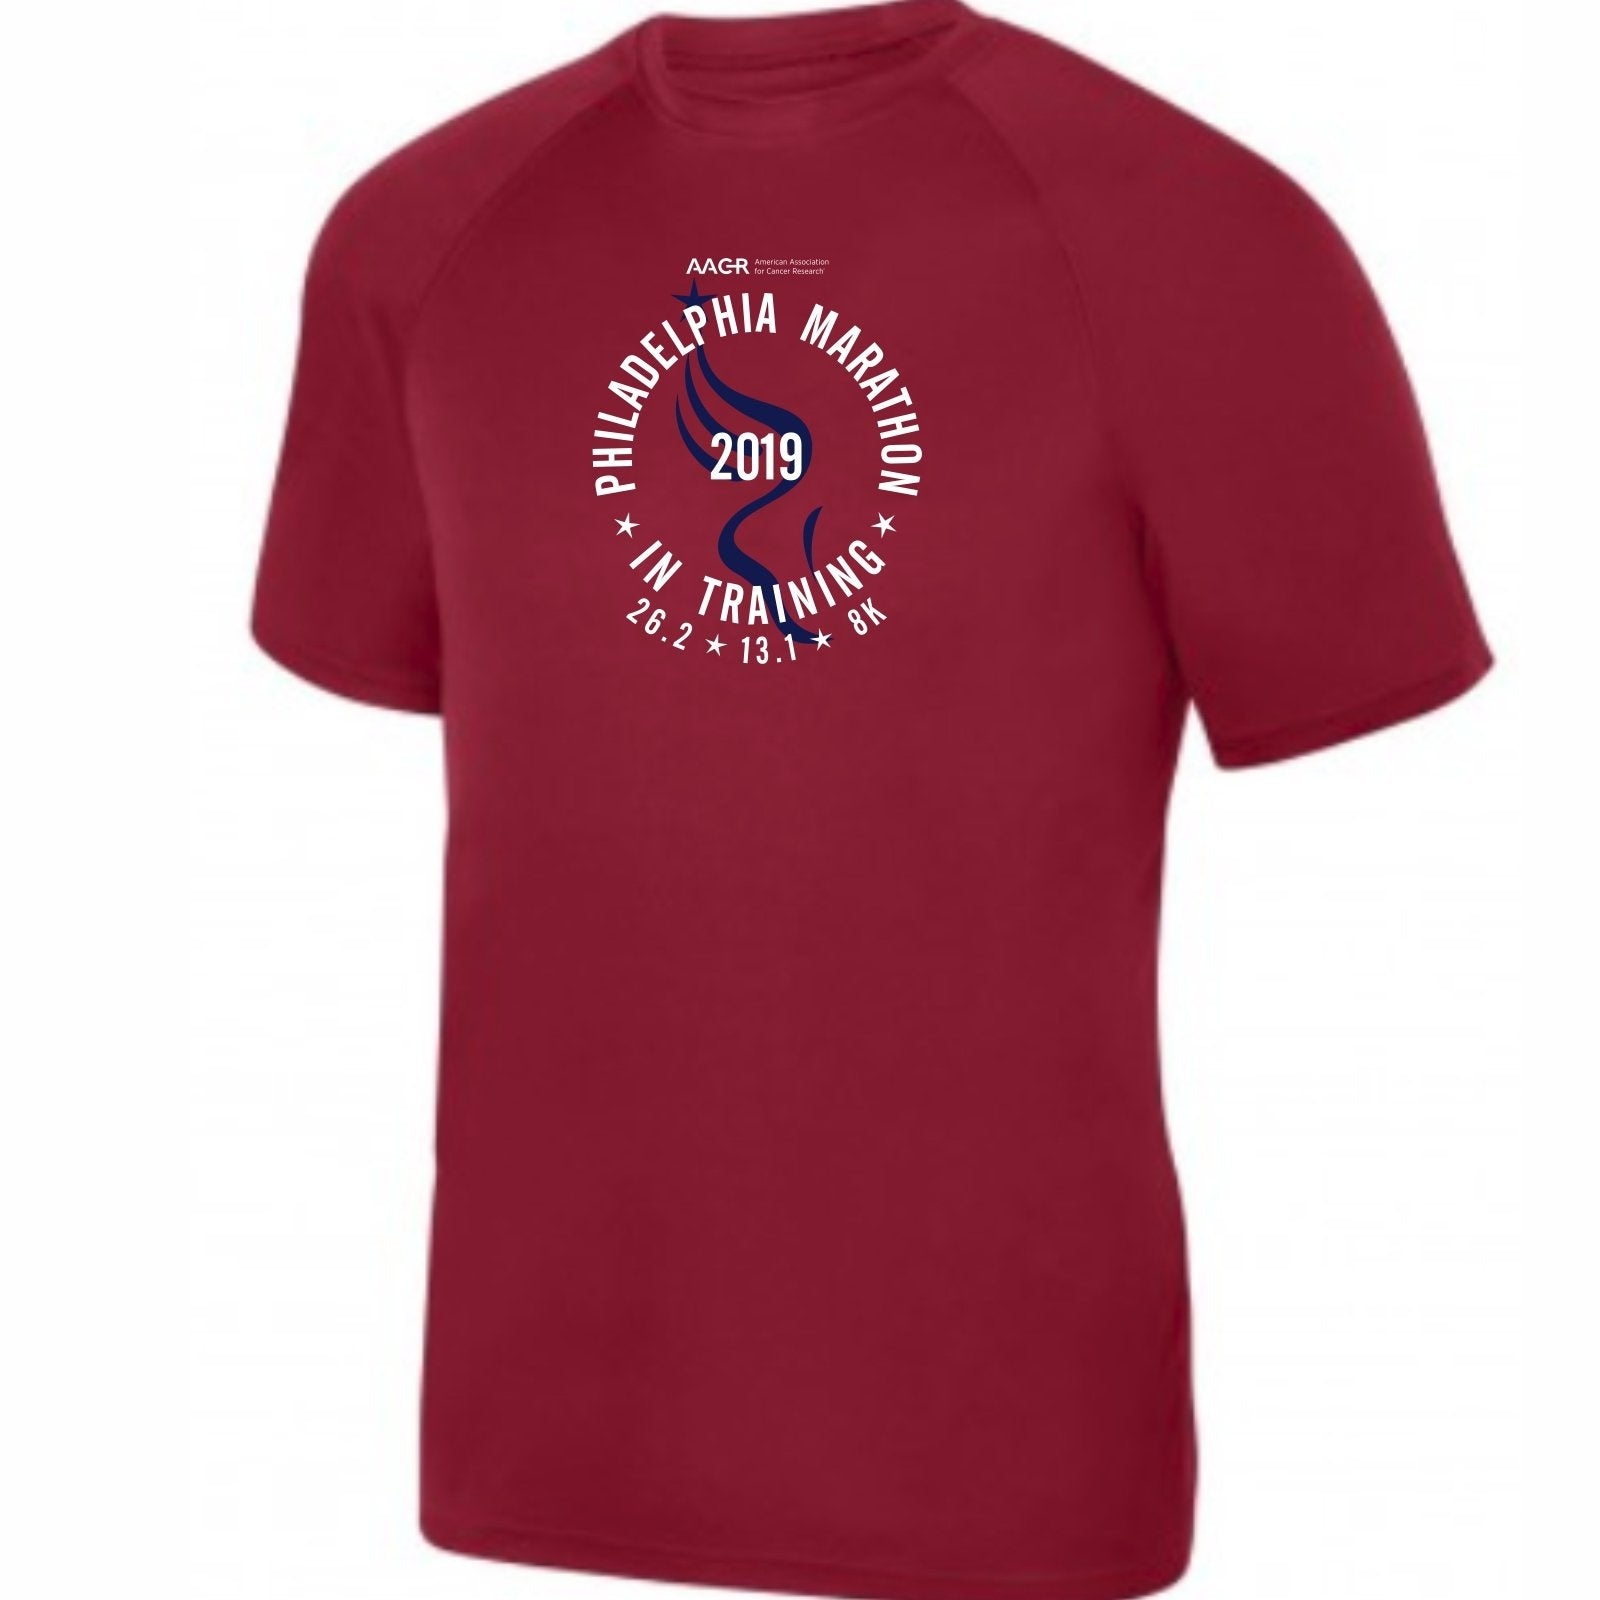 2019 AACR Philadelphia Marathon Men's In-Training SS Tee - Cardinal